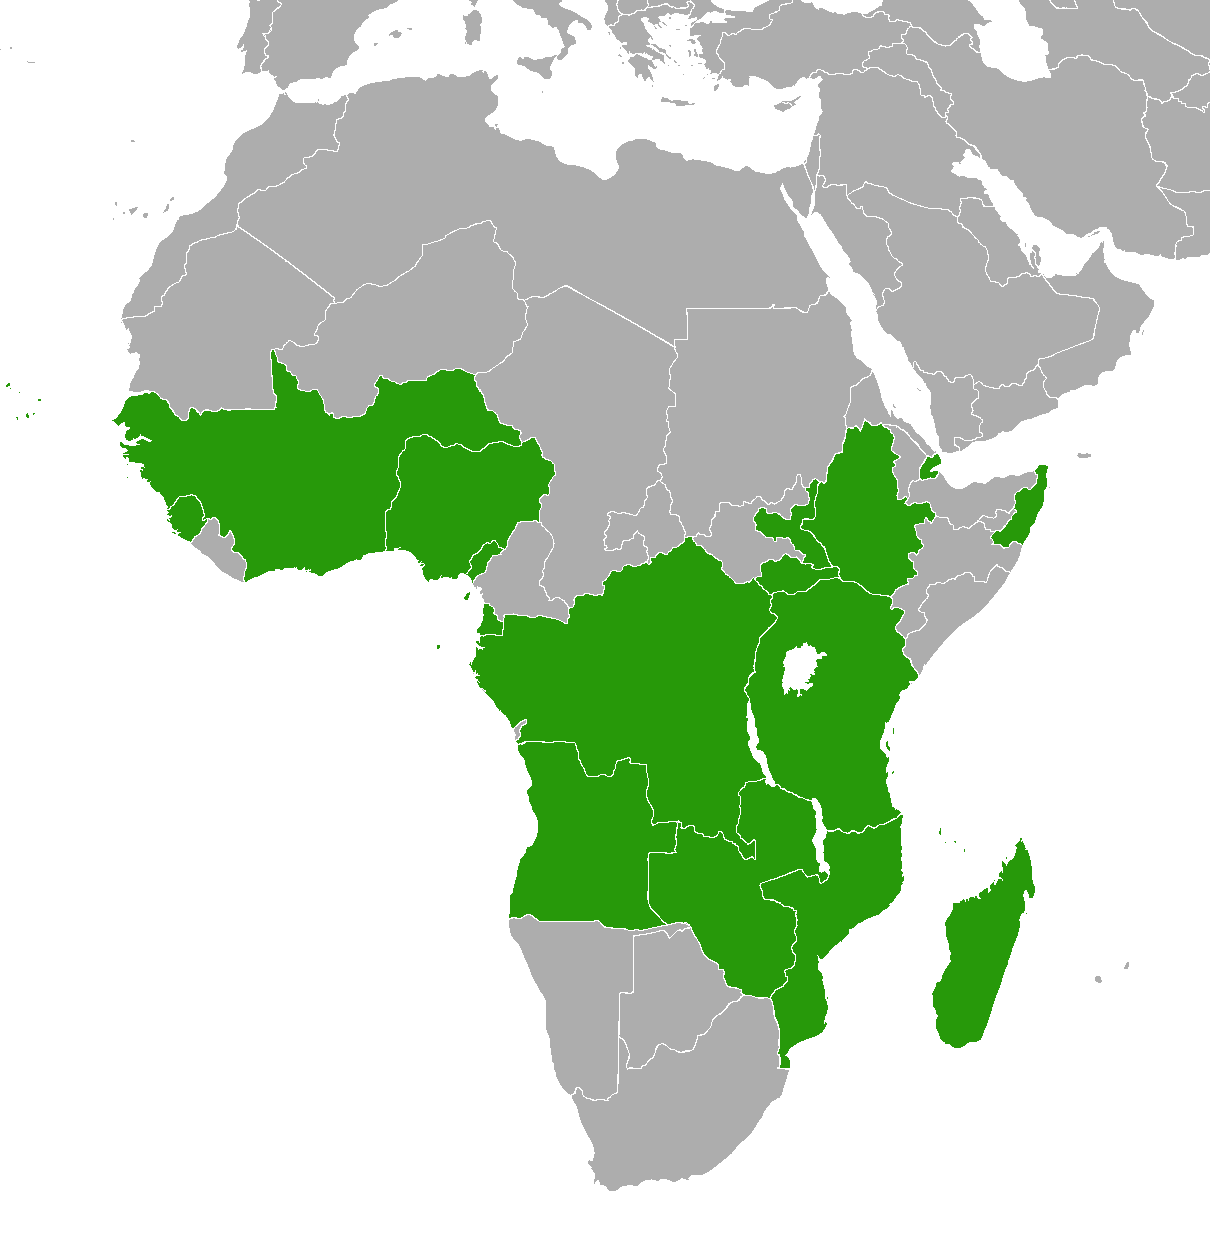 African Union Map.African Union Chinese Superpower Wiki Fandom Powered By Wikia